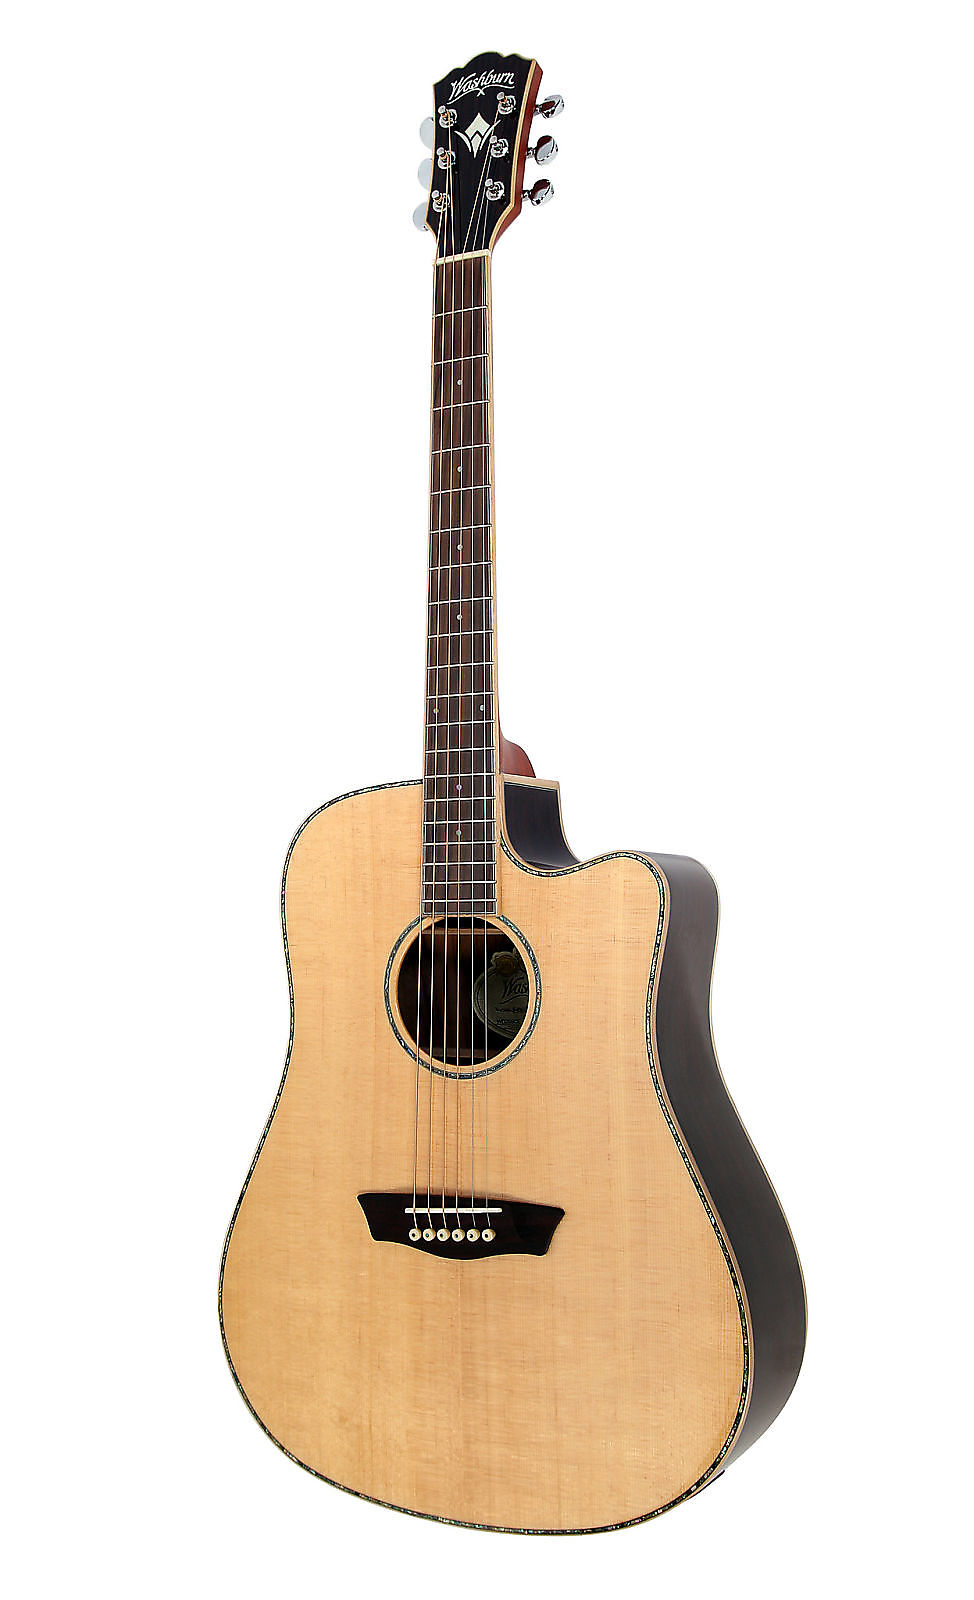 washburn guitars case evaluation Get the guaranteed lowest prices, largest selection and free shipping on most washburn acoustic guitars at musician's friend.